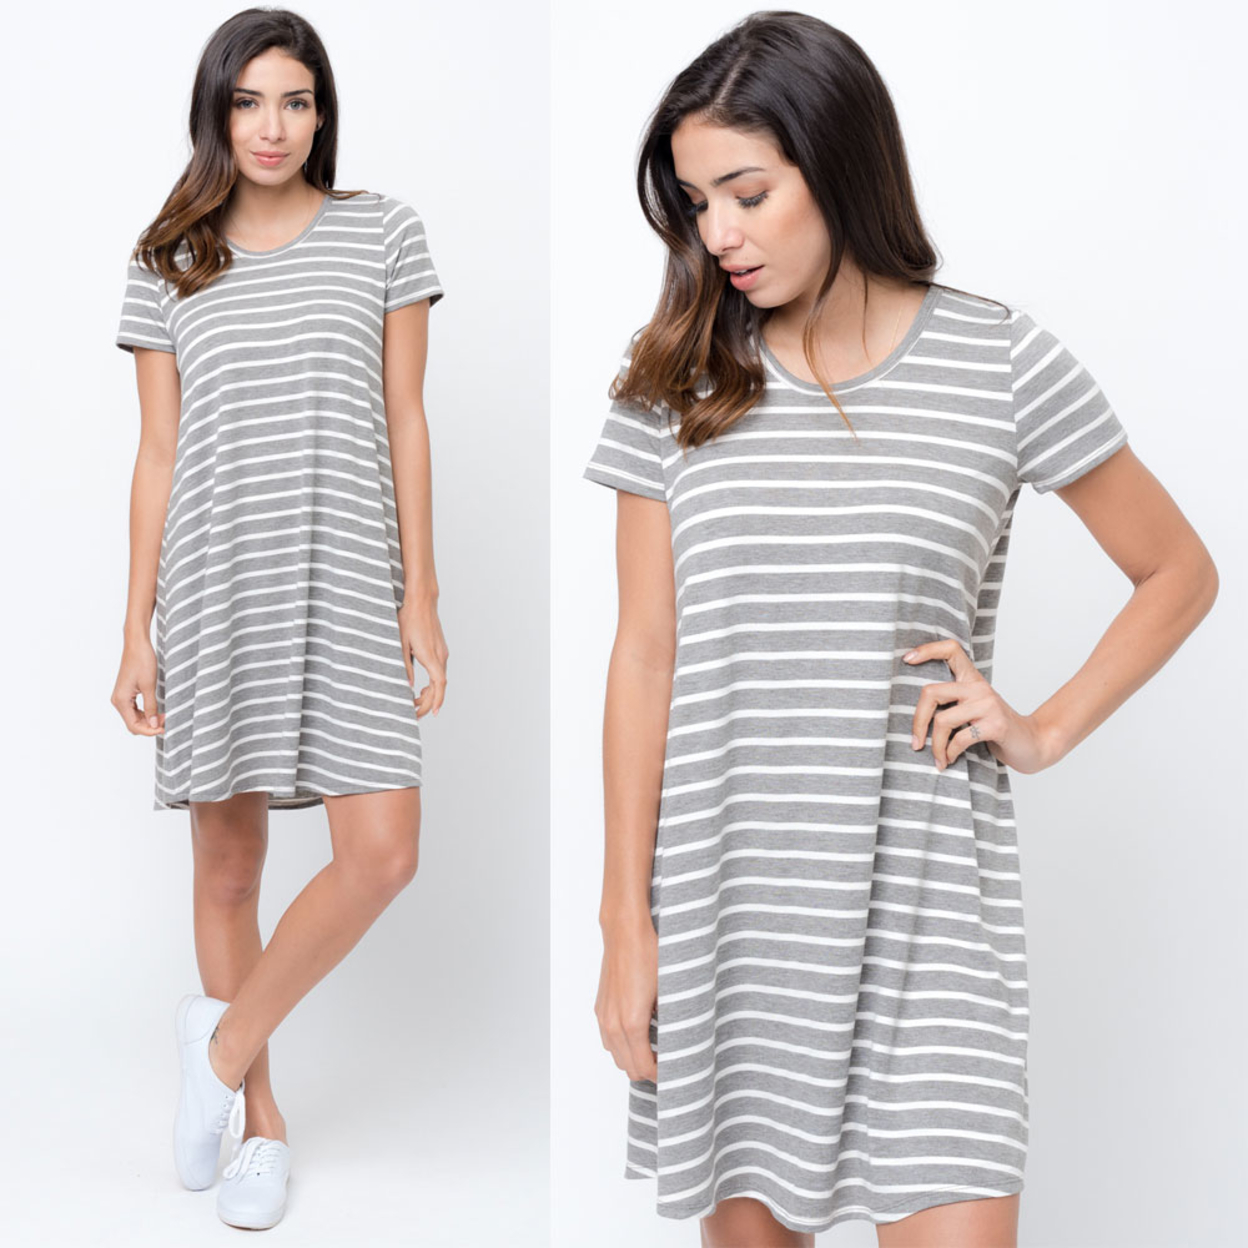 Caralase Striped Flared Tee Dress- 5 Colors Available - Heather Grey, Medium 5797f25b99336a3153463601